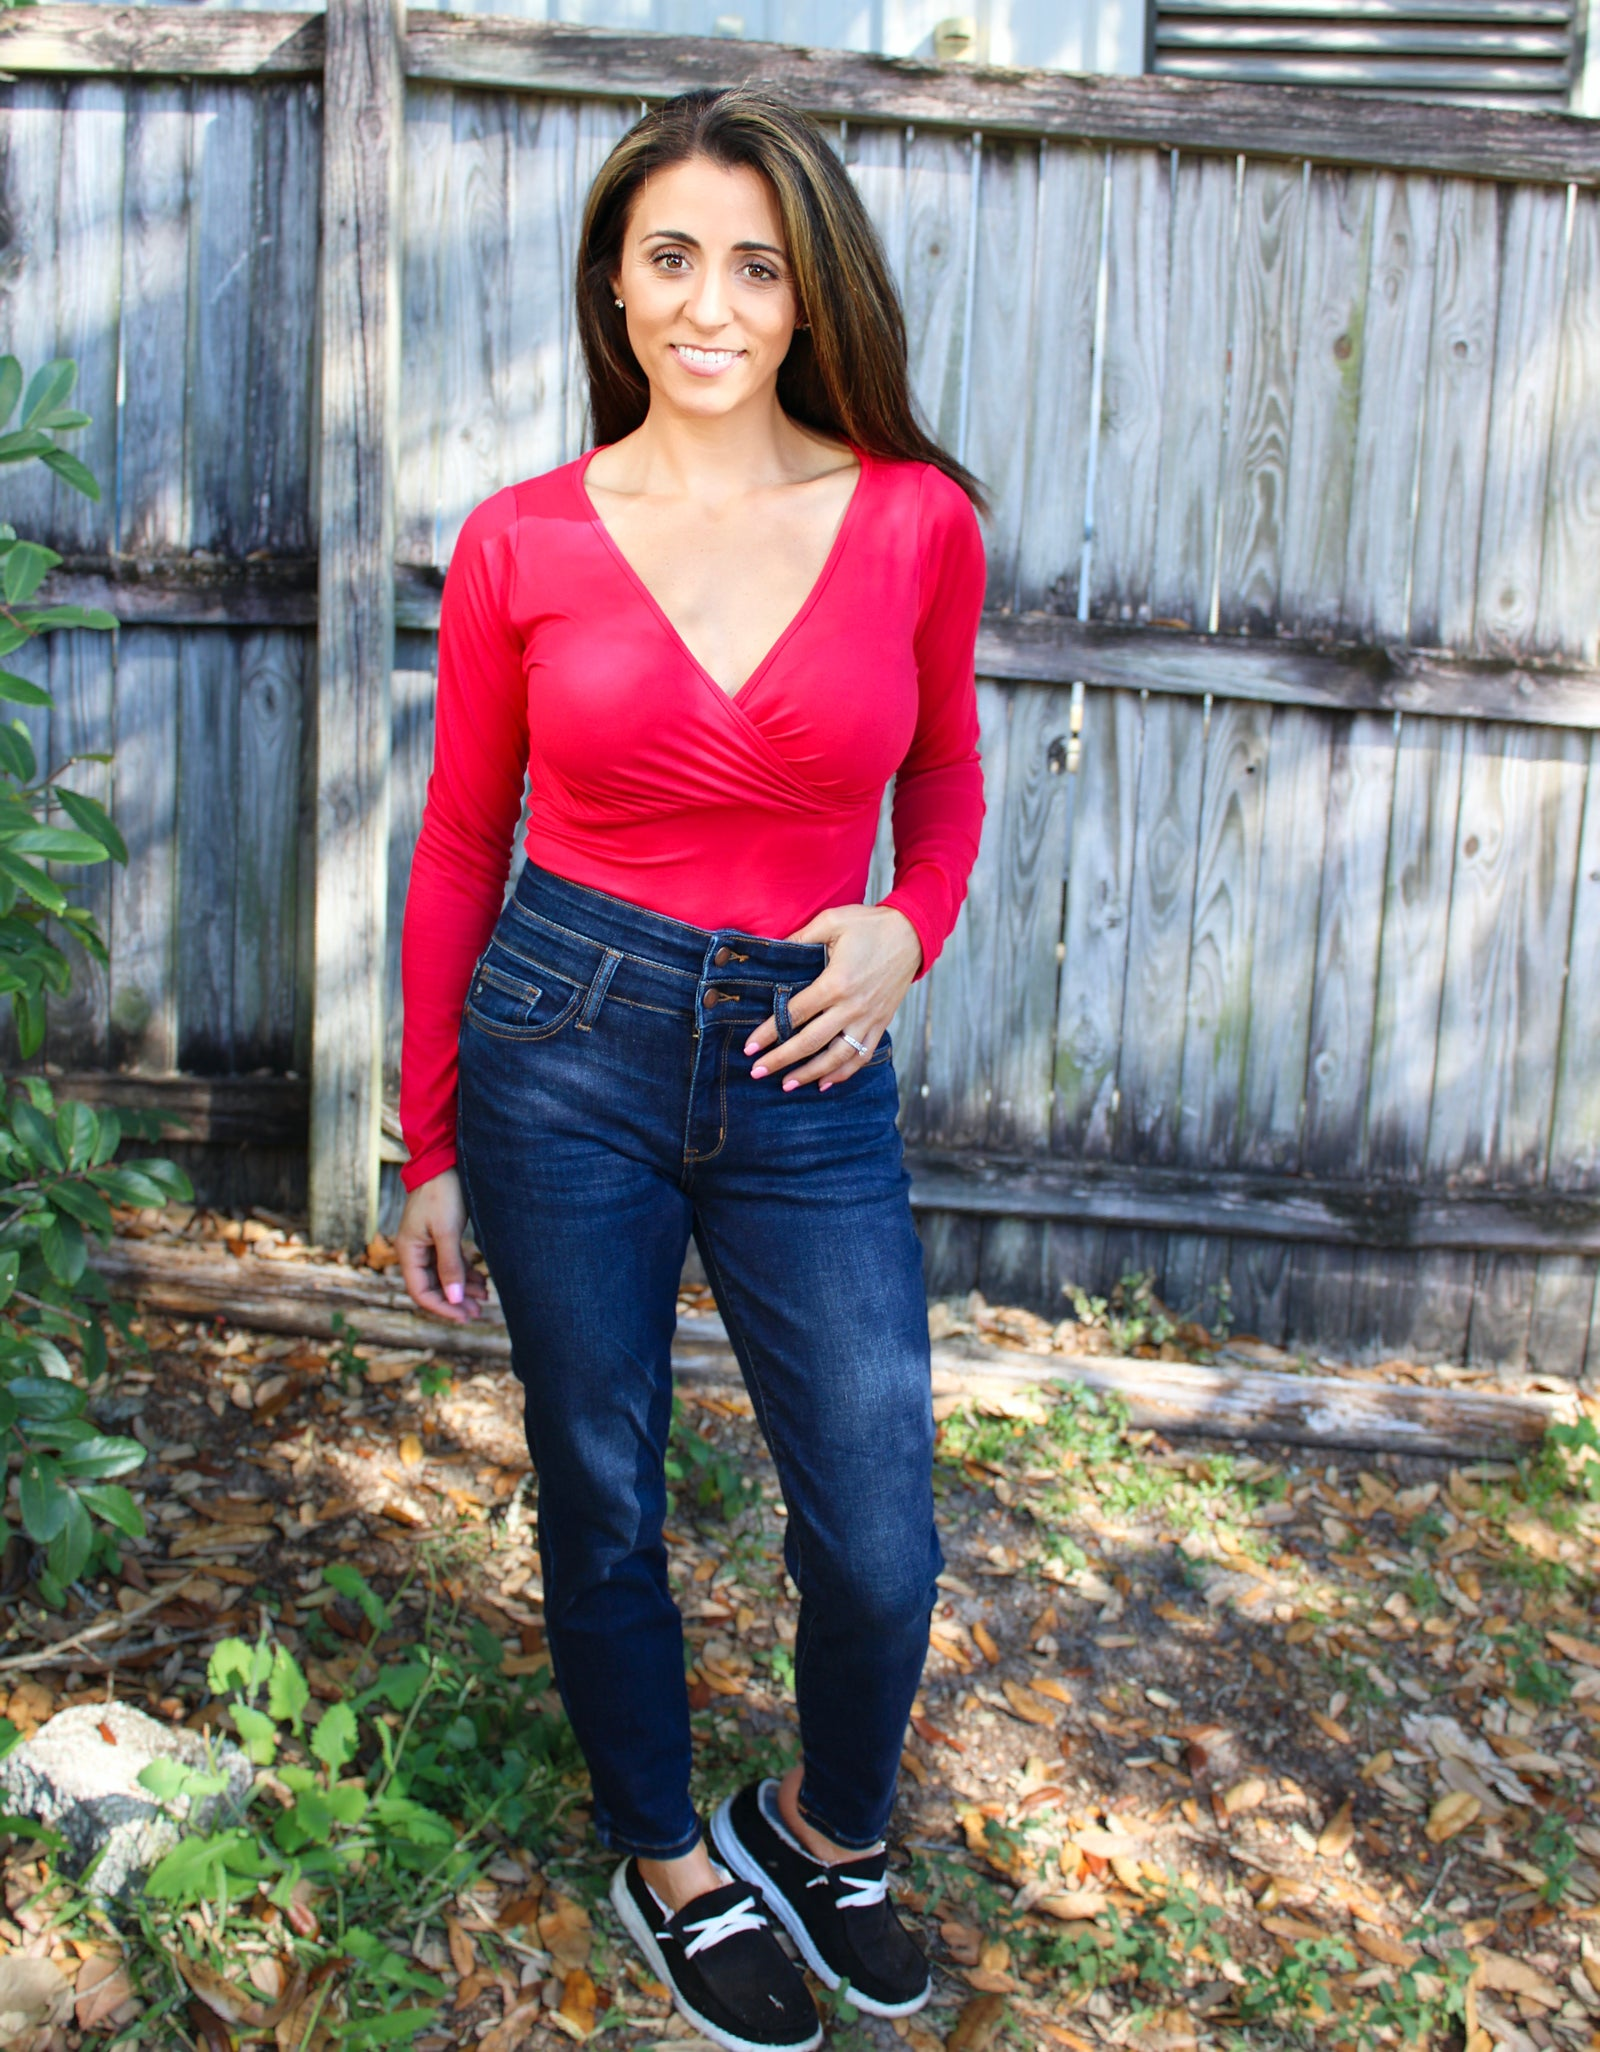 Judy Blue Double Trouble Jeans